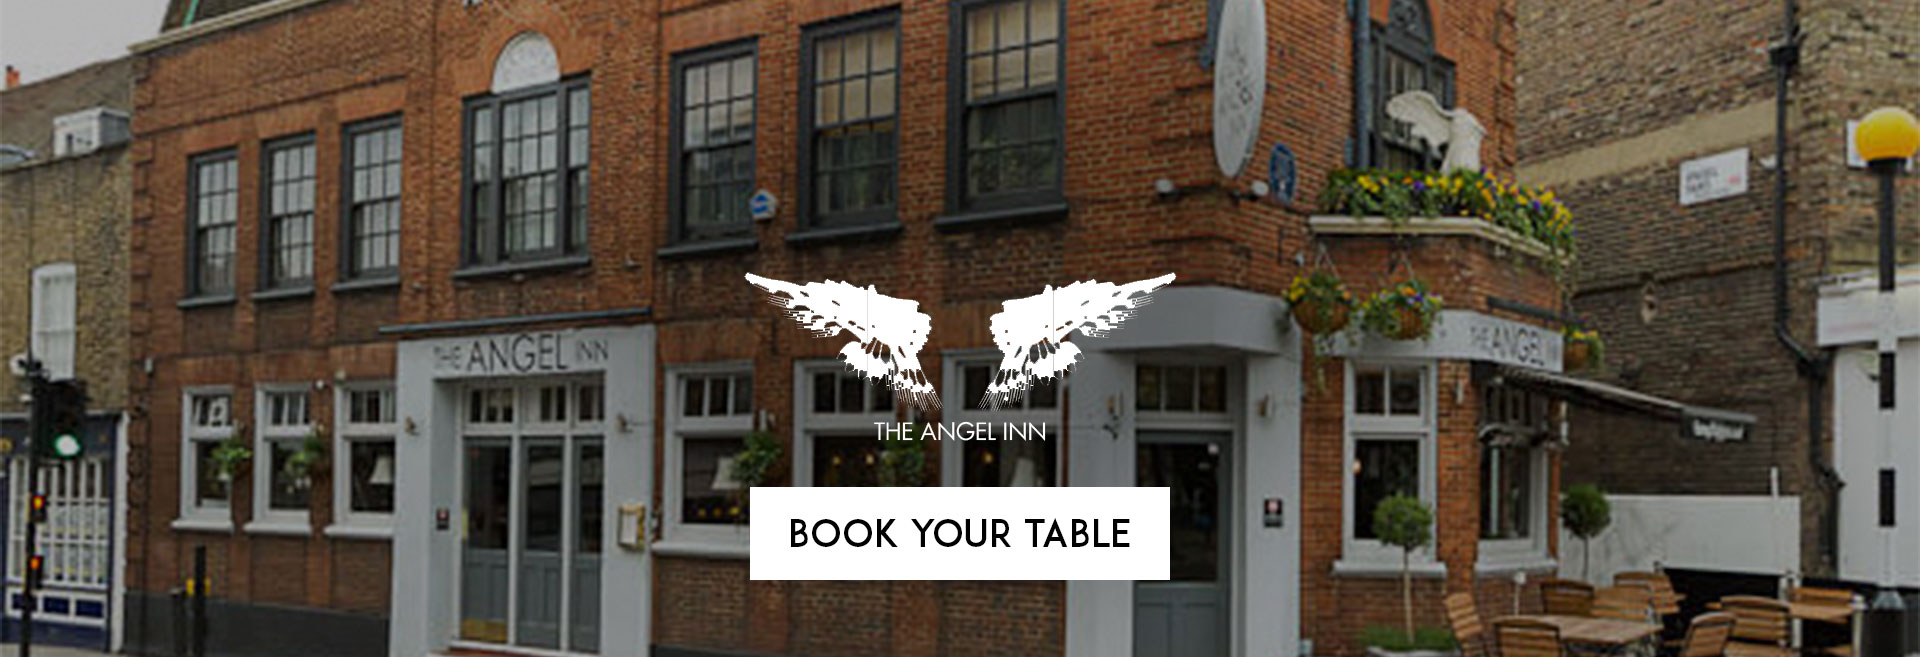 Book Your Table at The Angel Inn